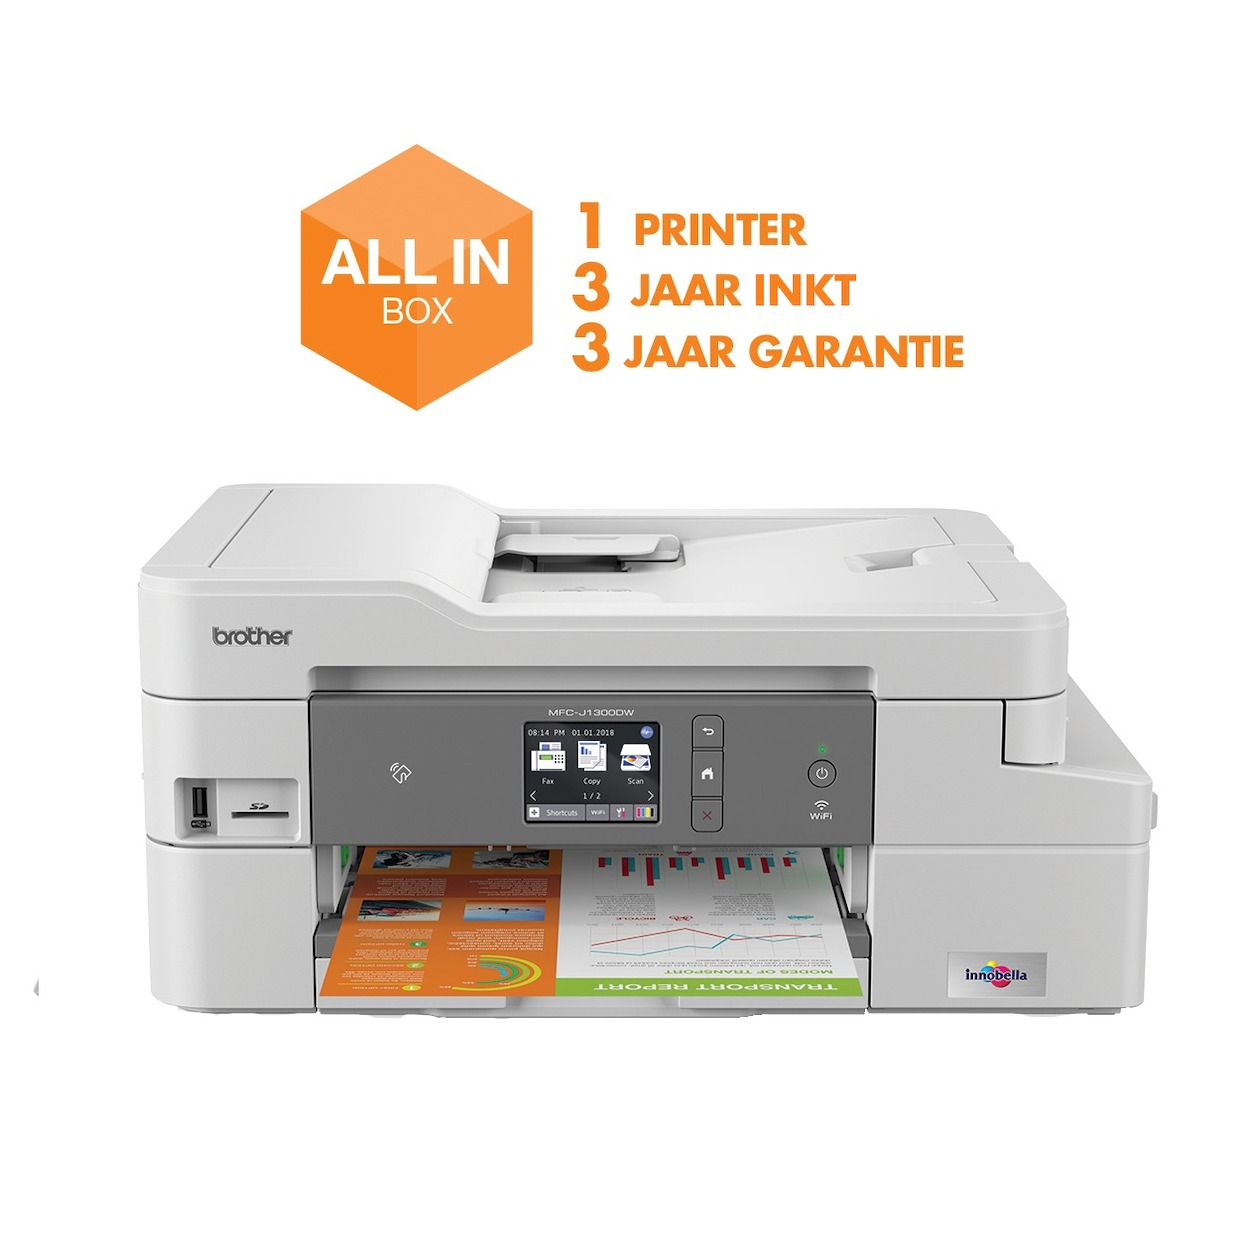 Brother all-in-one inkjet printer MFC-J1300DW (all-in-box)